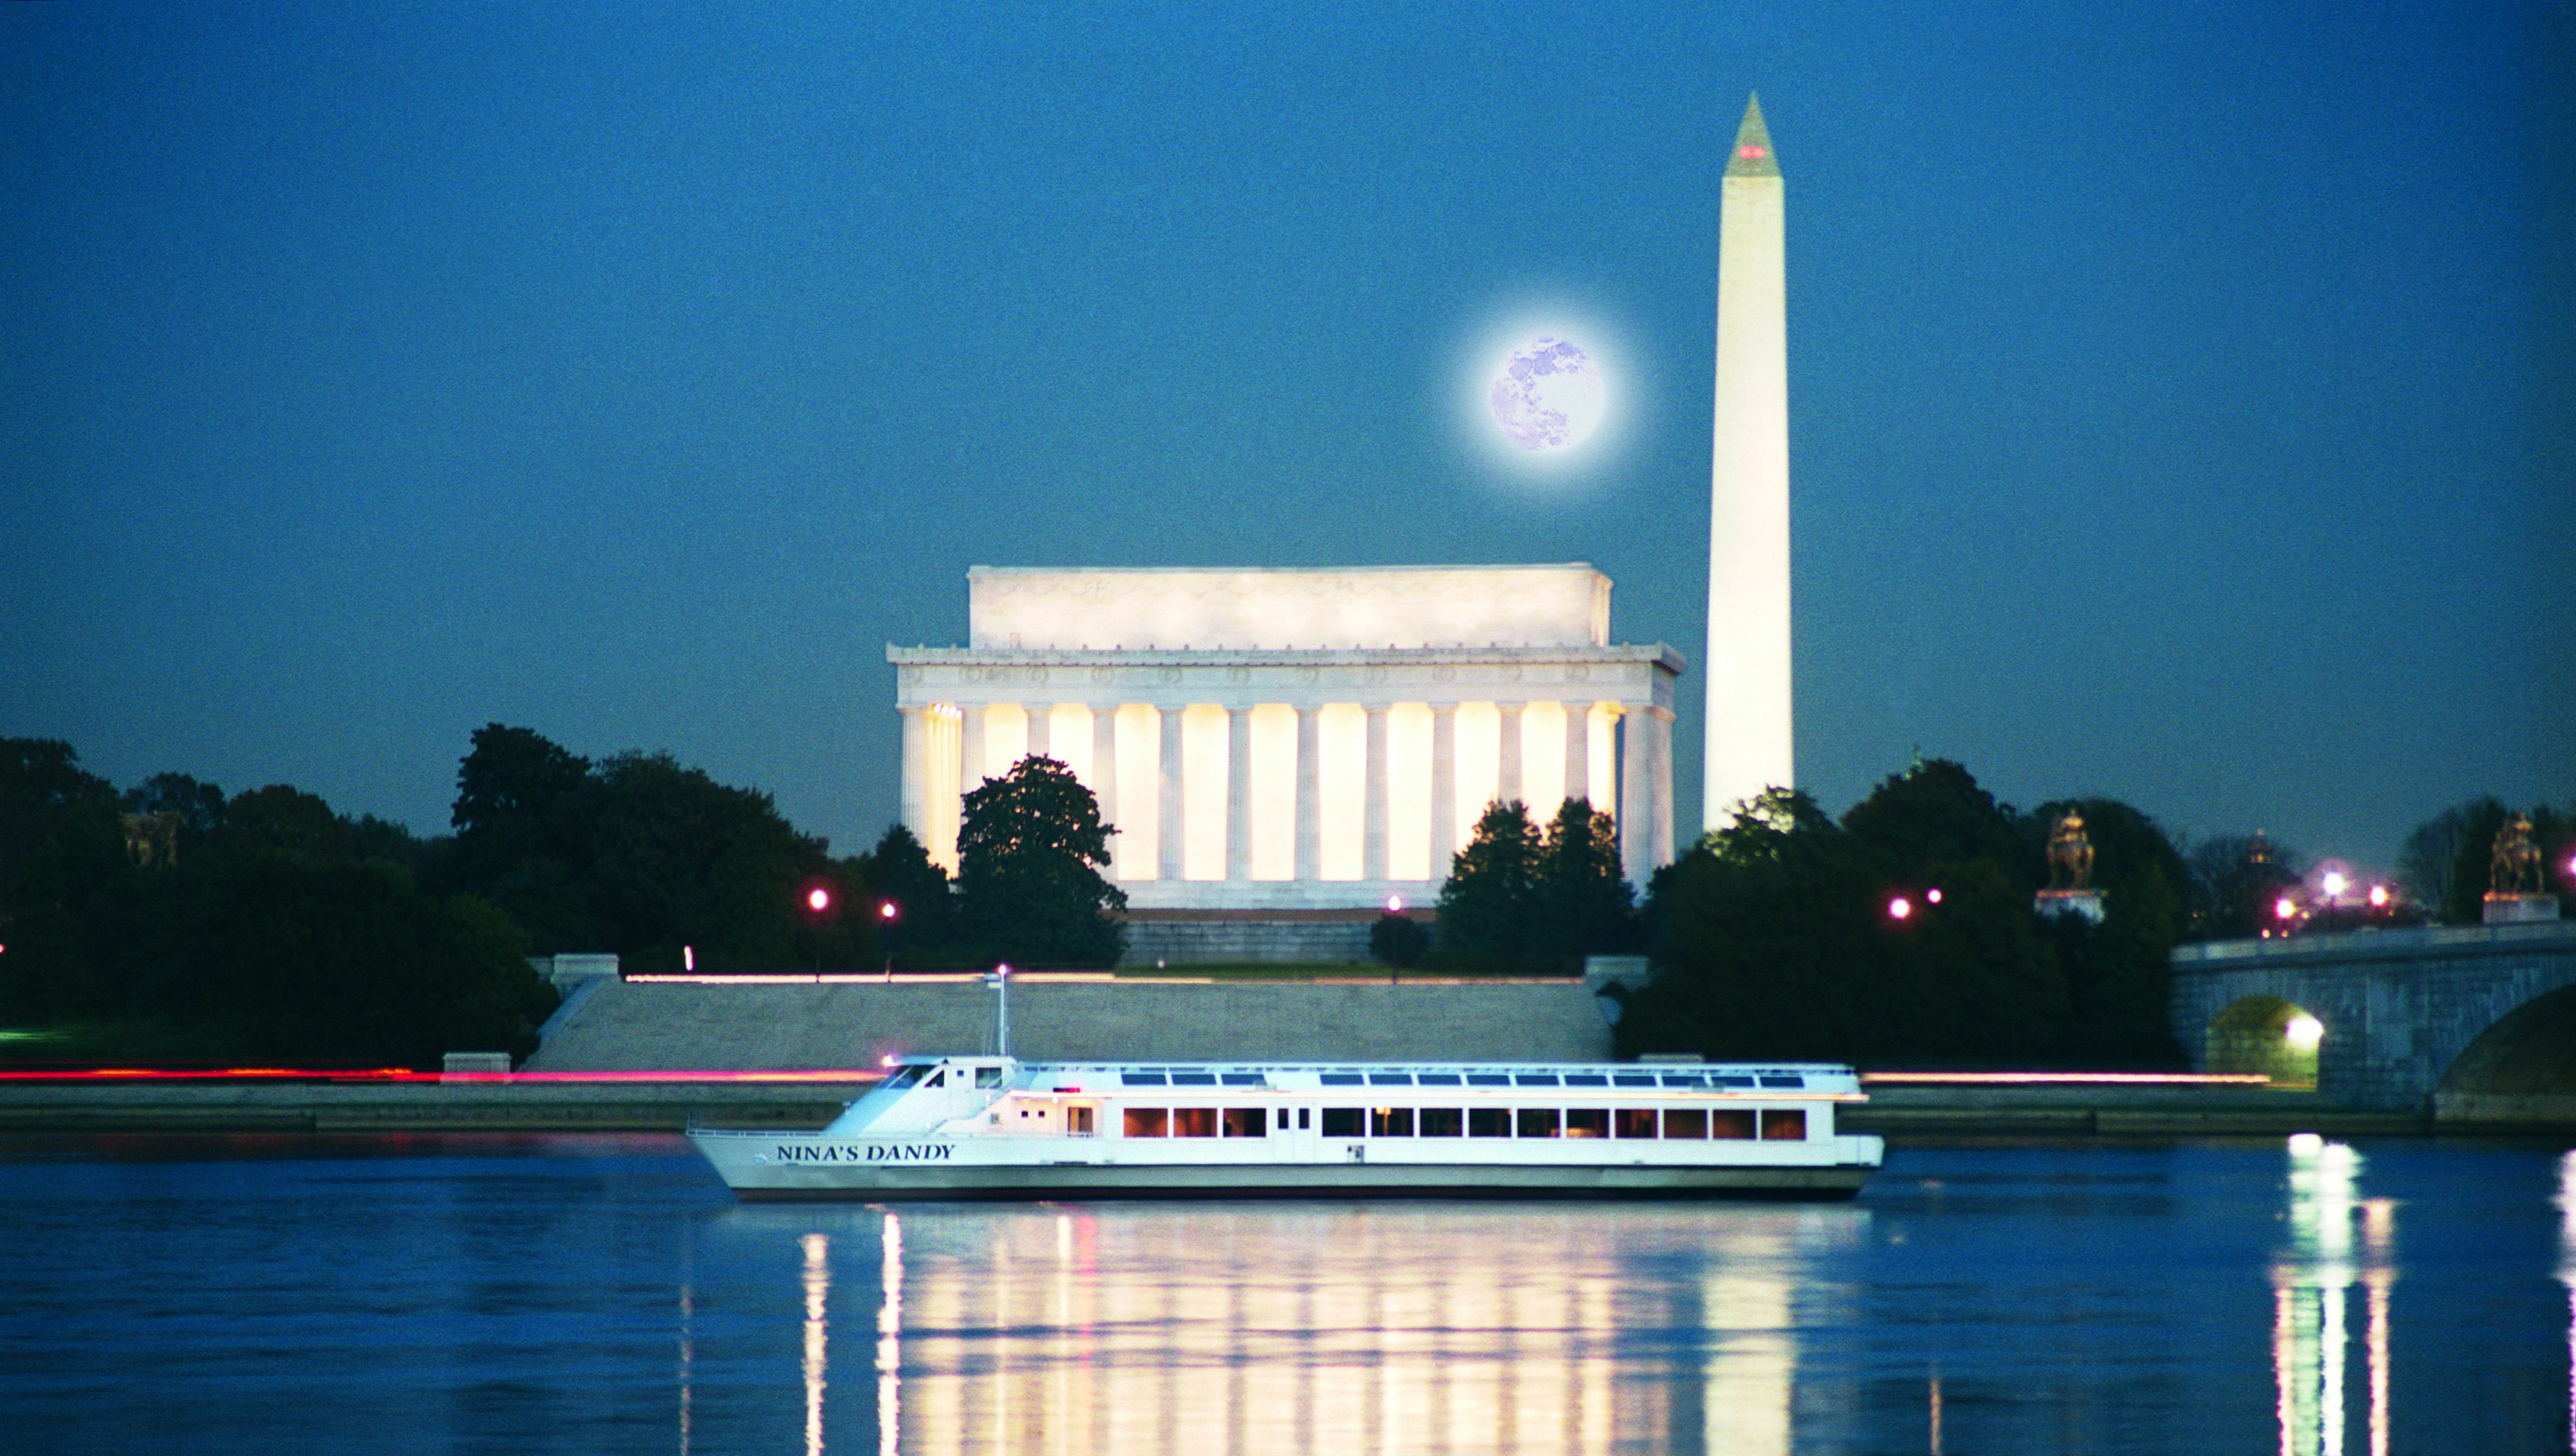 Nina's Dandy Lunch and Brunch Cruises With National Monument Views $42.00 ($60 value)